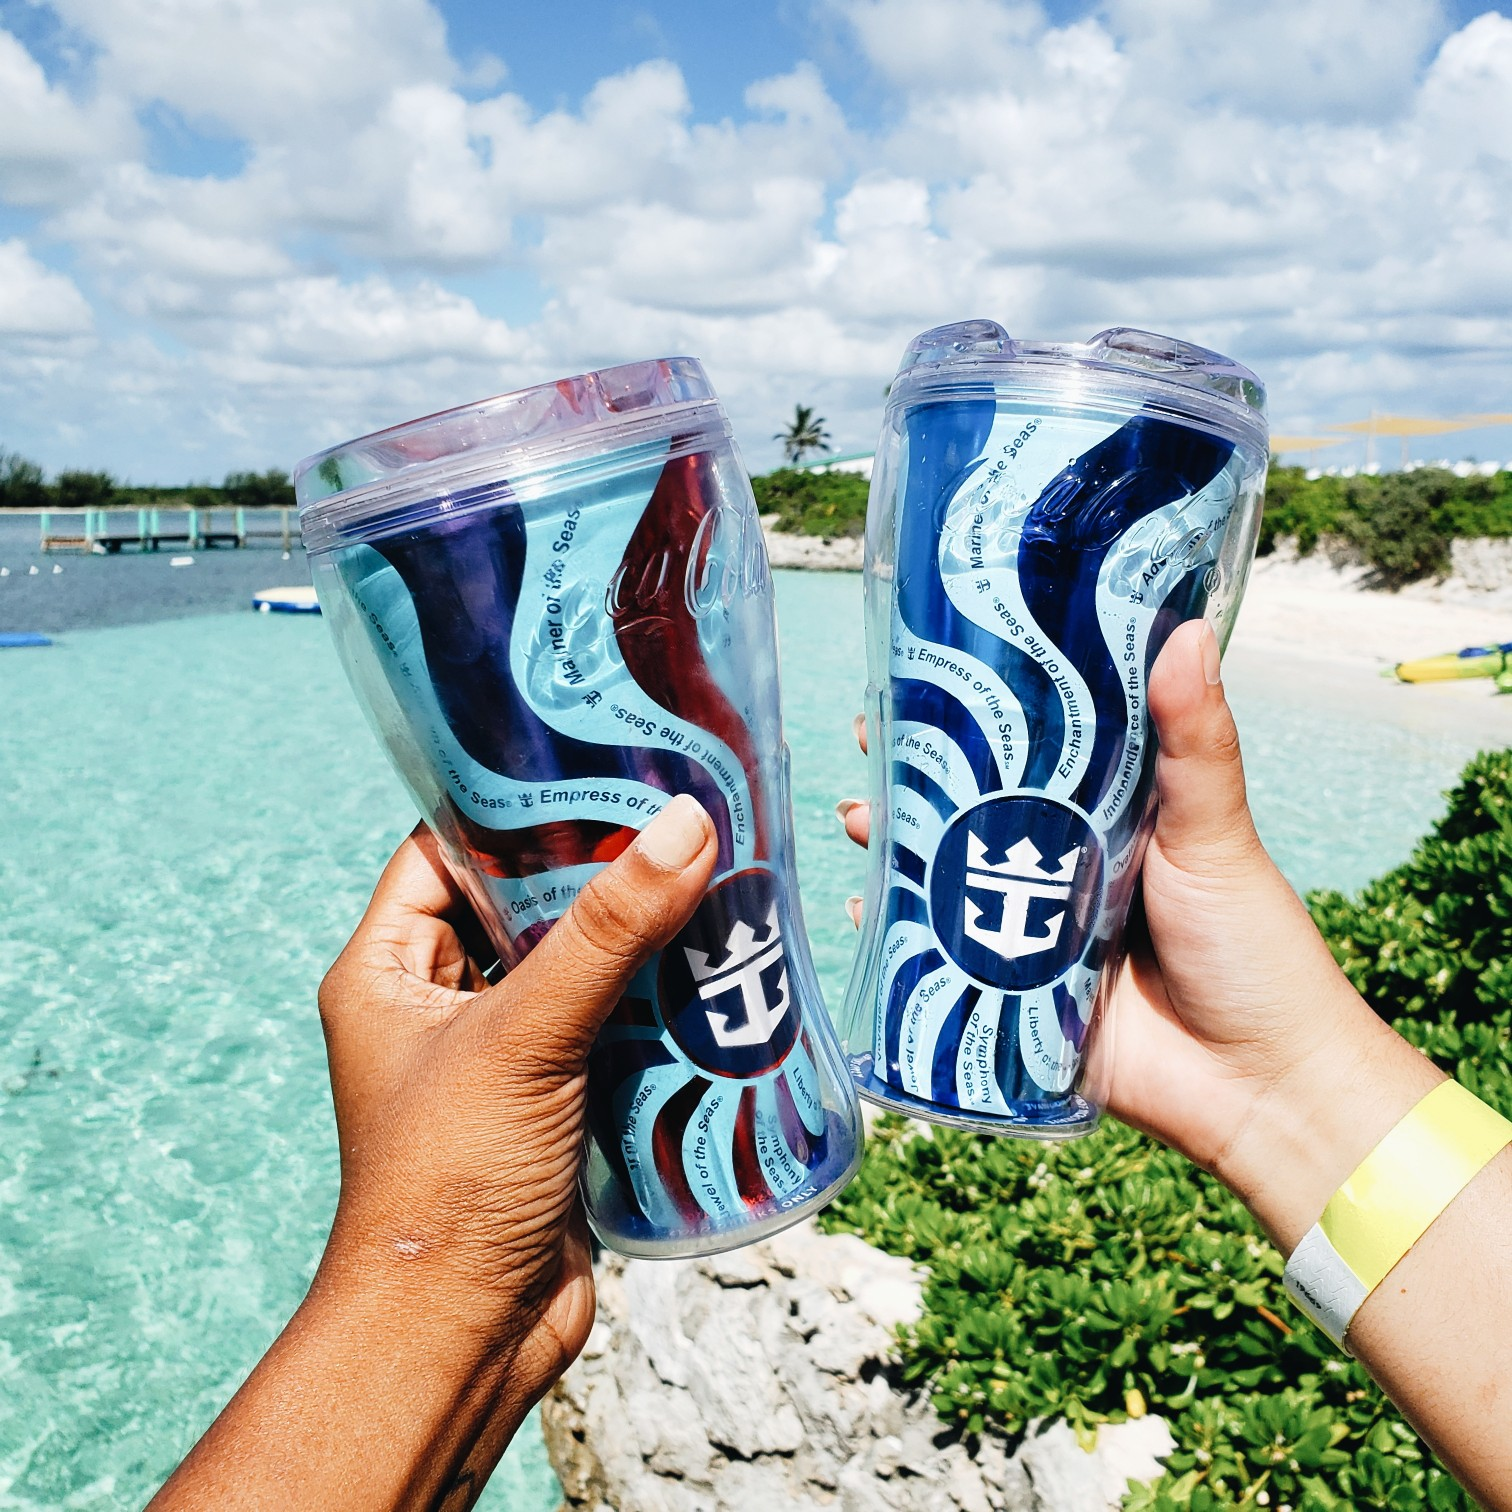 Royal Caribbean Souvenir Cups Near Beach